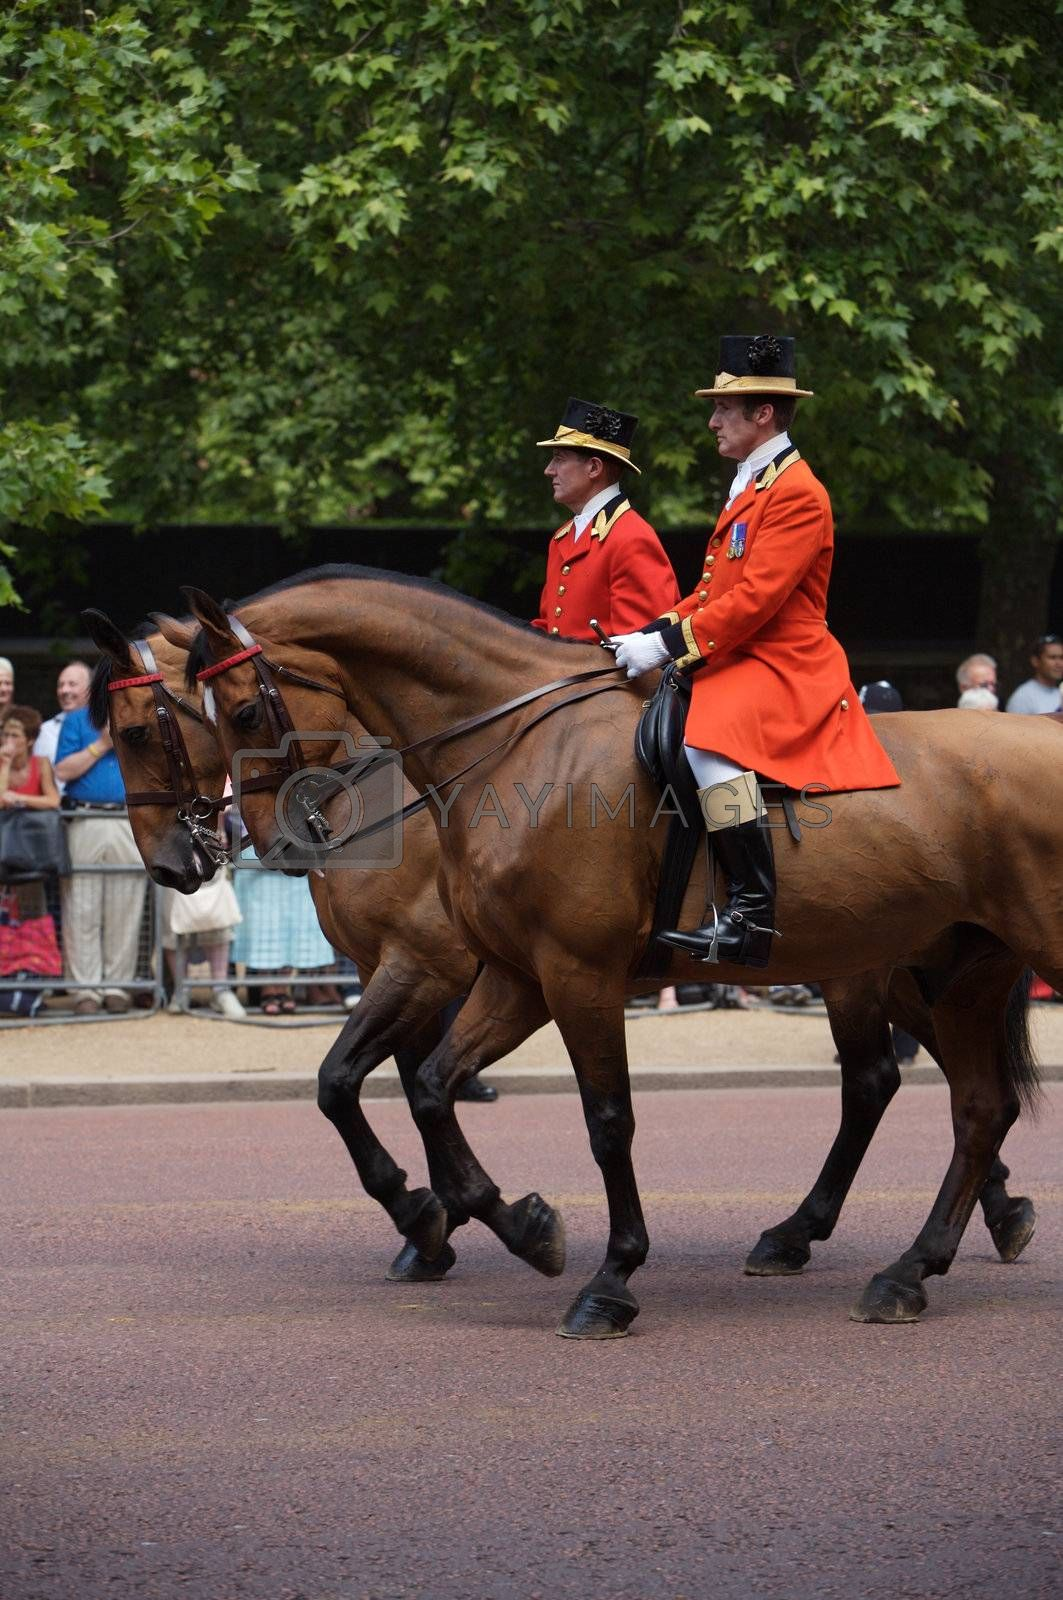 Trooping of the Colors for the Queen's Birthday in London, one of London's most popular annual royal events